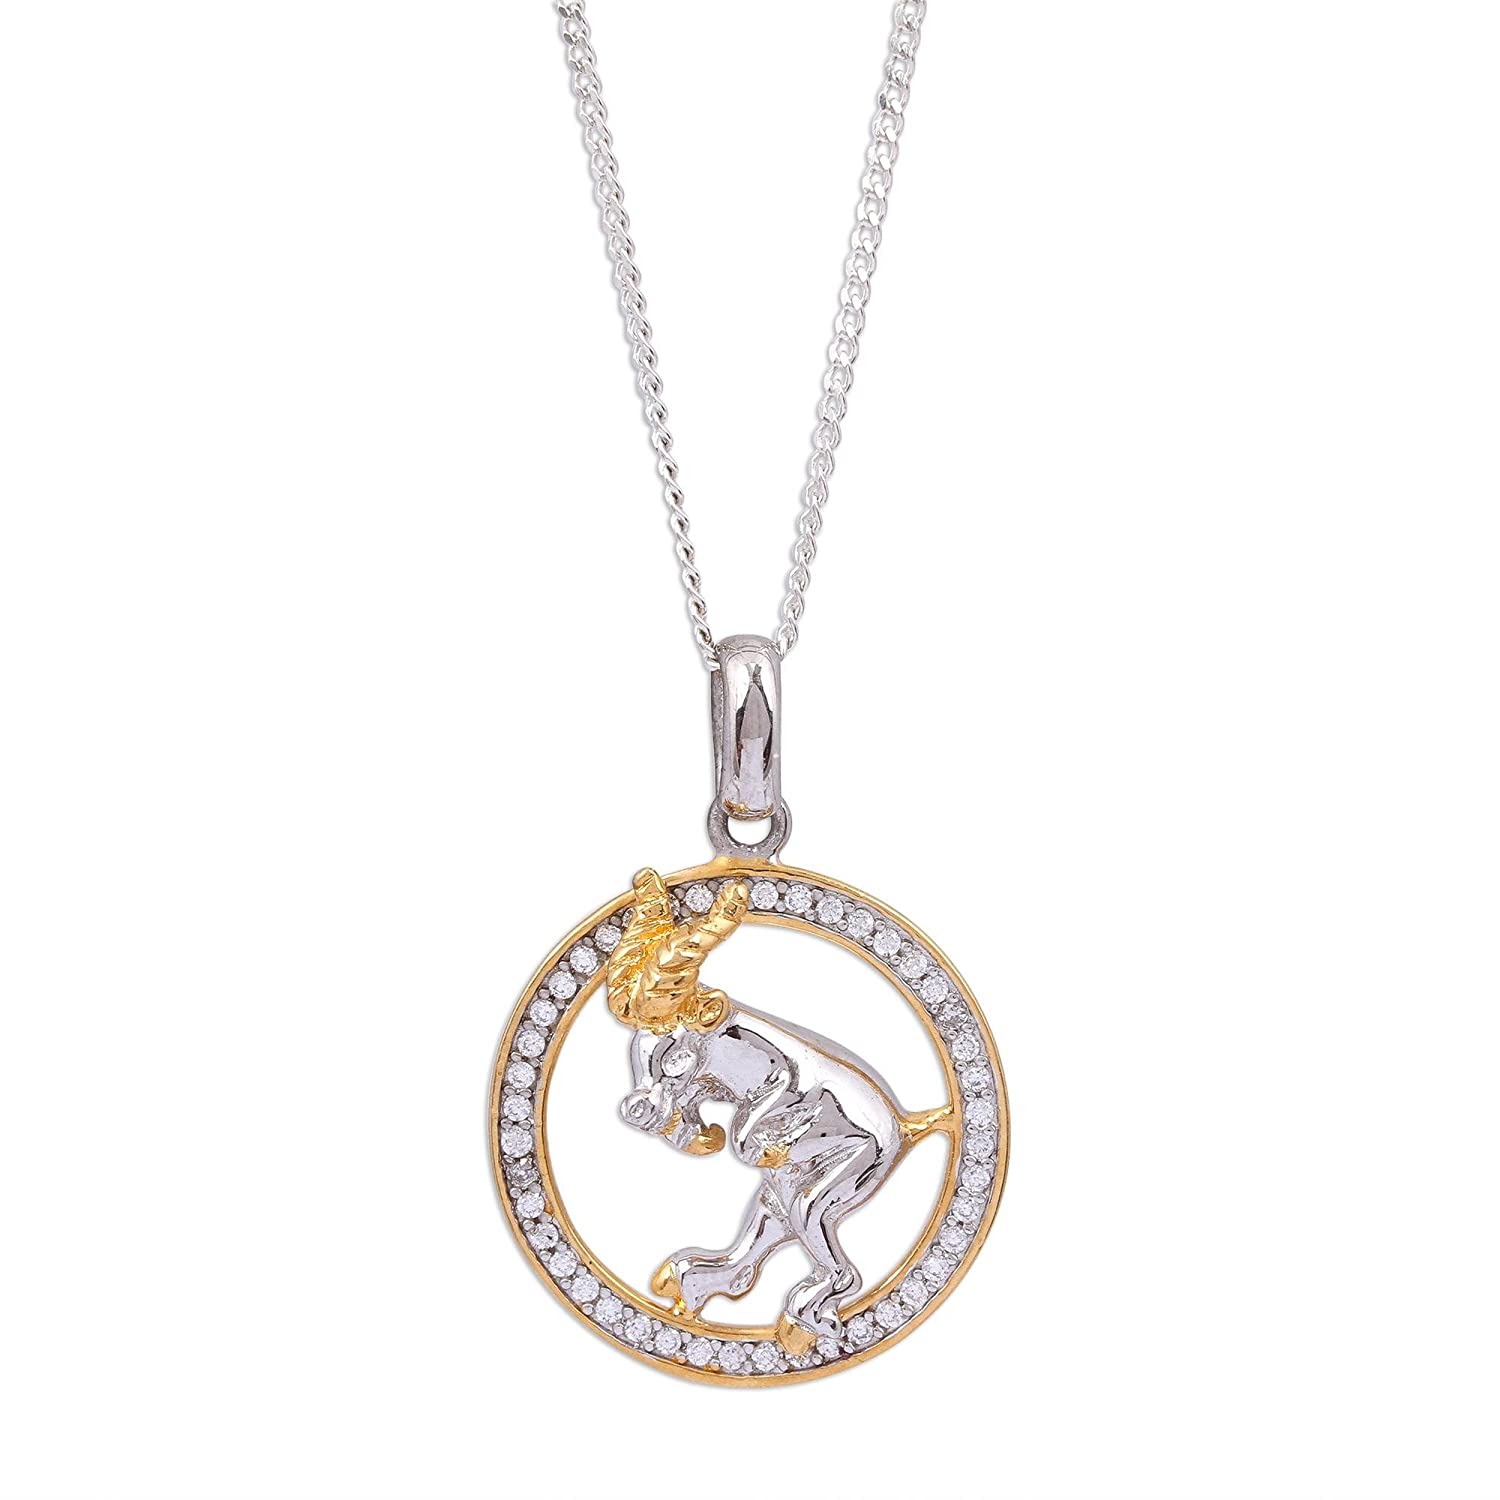 17.75 Celestial Ram NOVICA Cubic Zirconia 22k Gold Plated .925 Sterling Silver Pendant Necklace